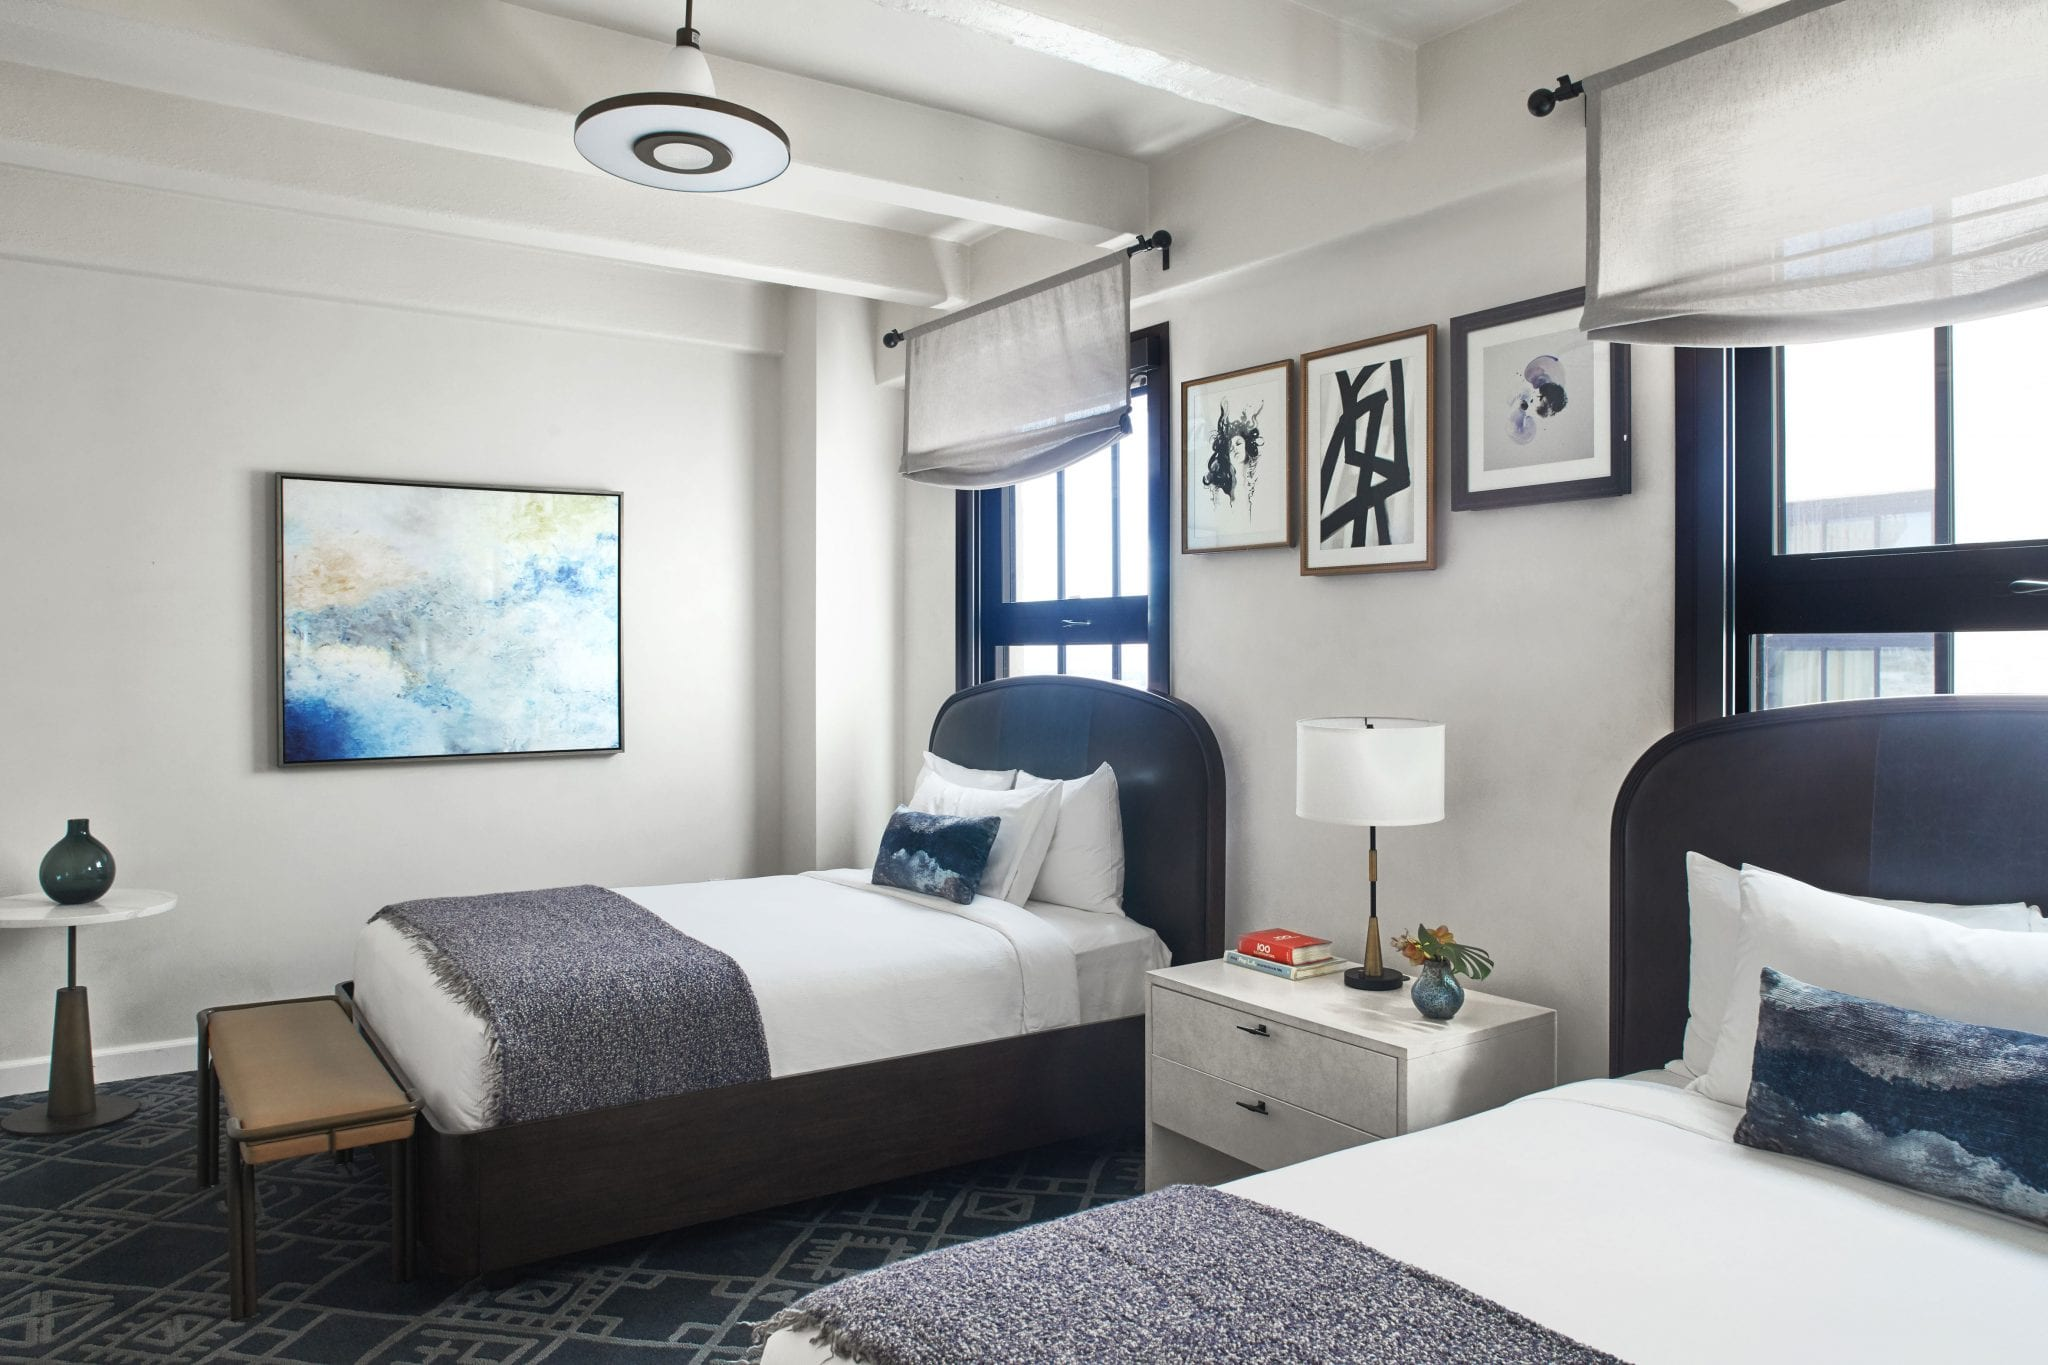 hotel room with two beds, nightstand and framed art